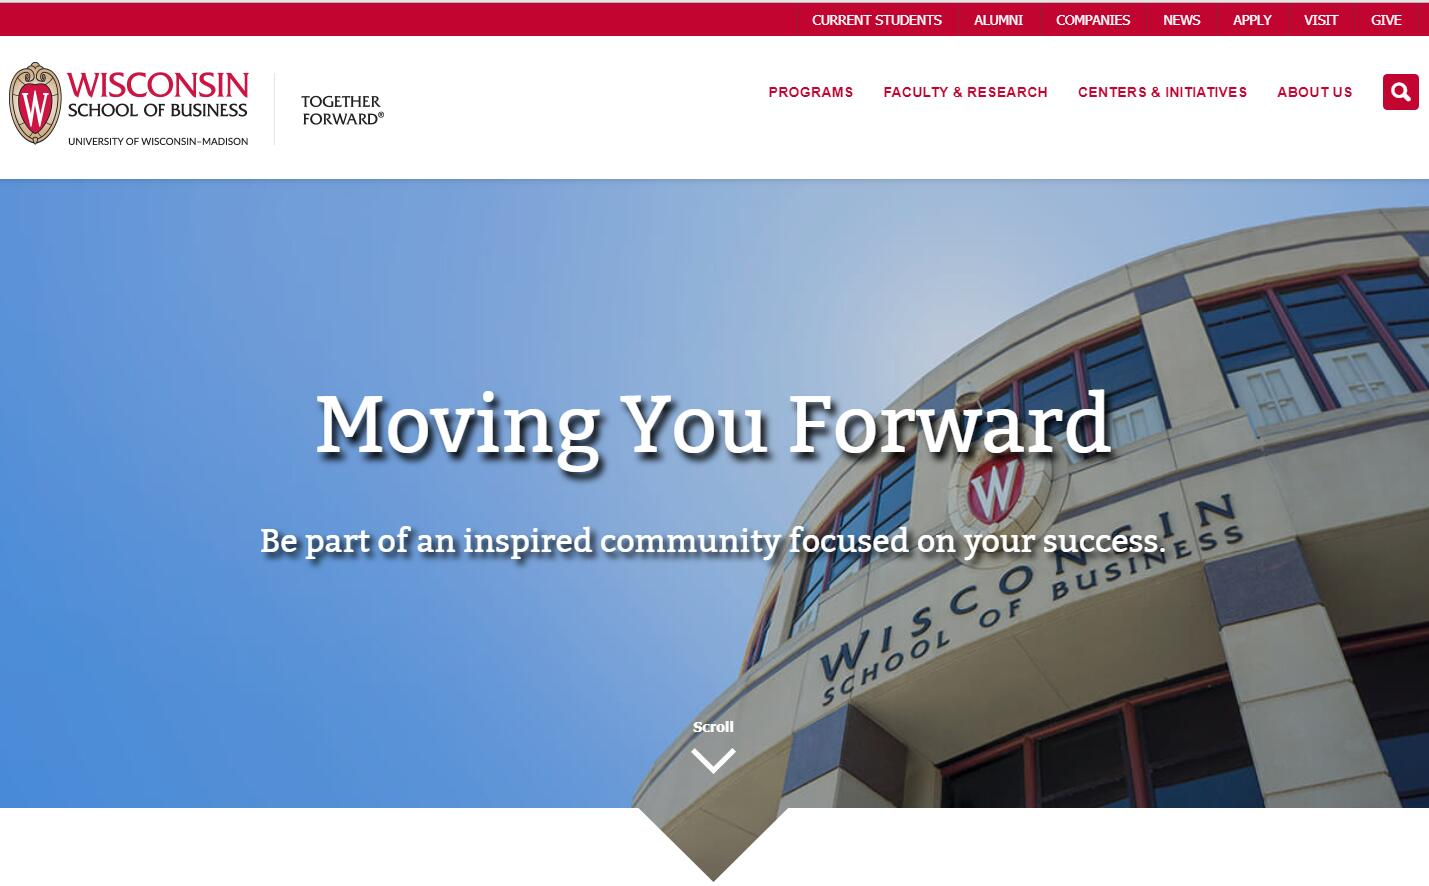 The School of Business at University of Wisconsin–Madison